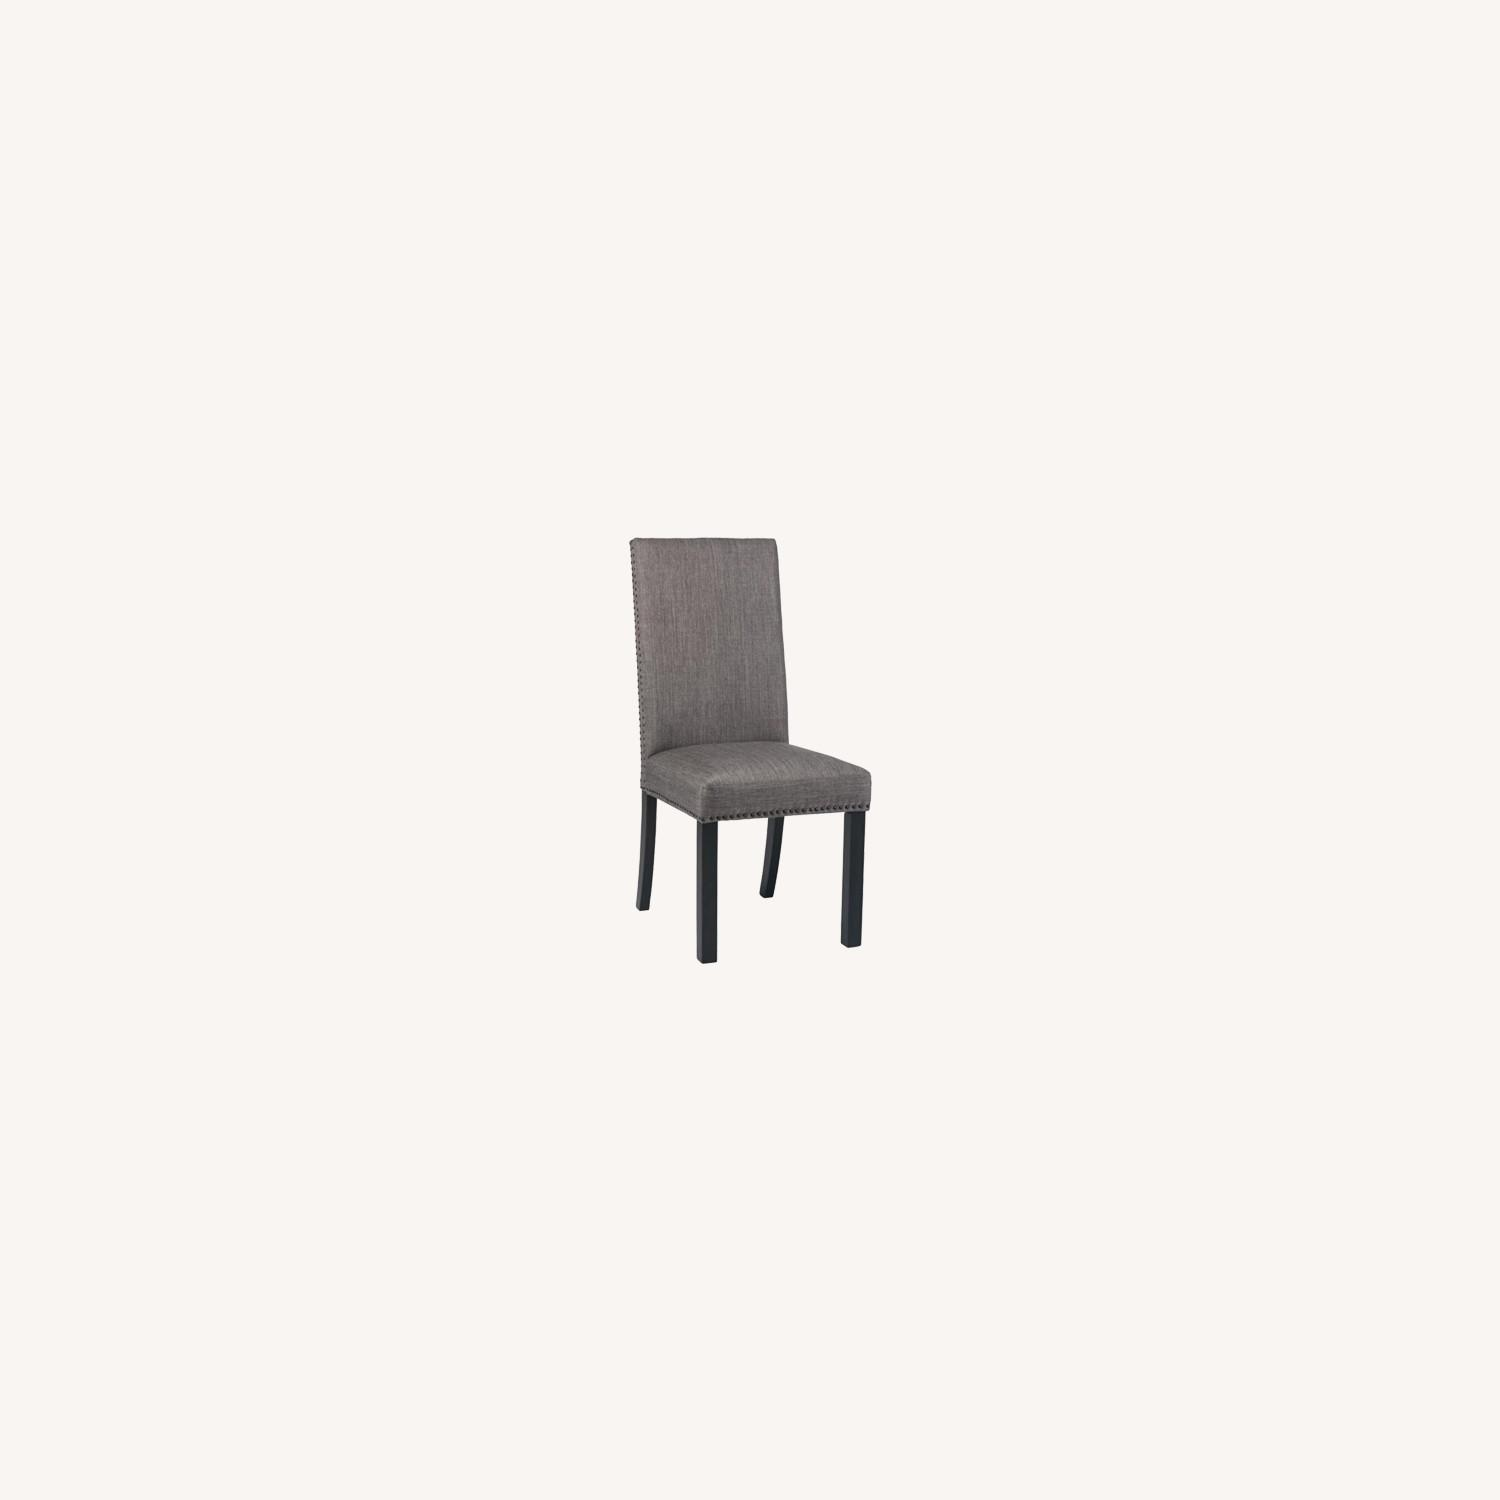 Dining Chair In Grey Linen Upholstery - image-3